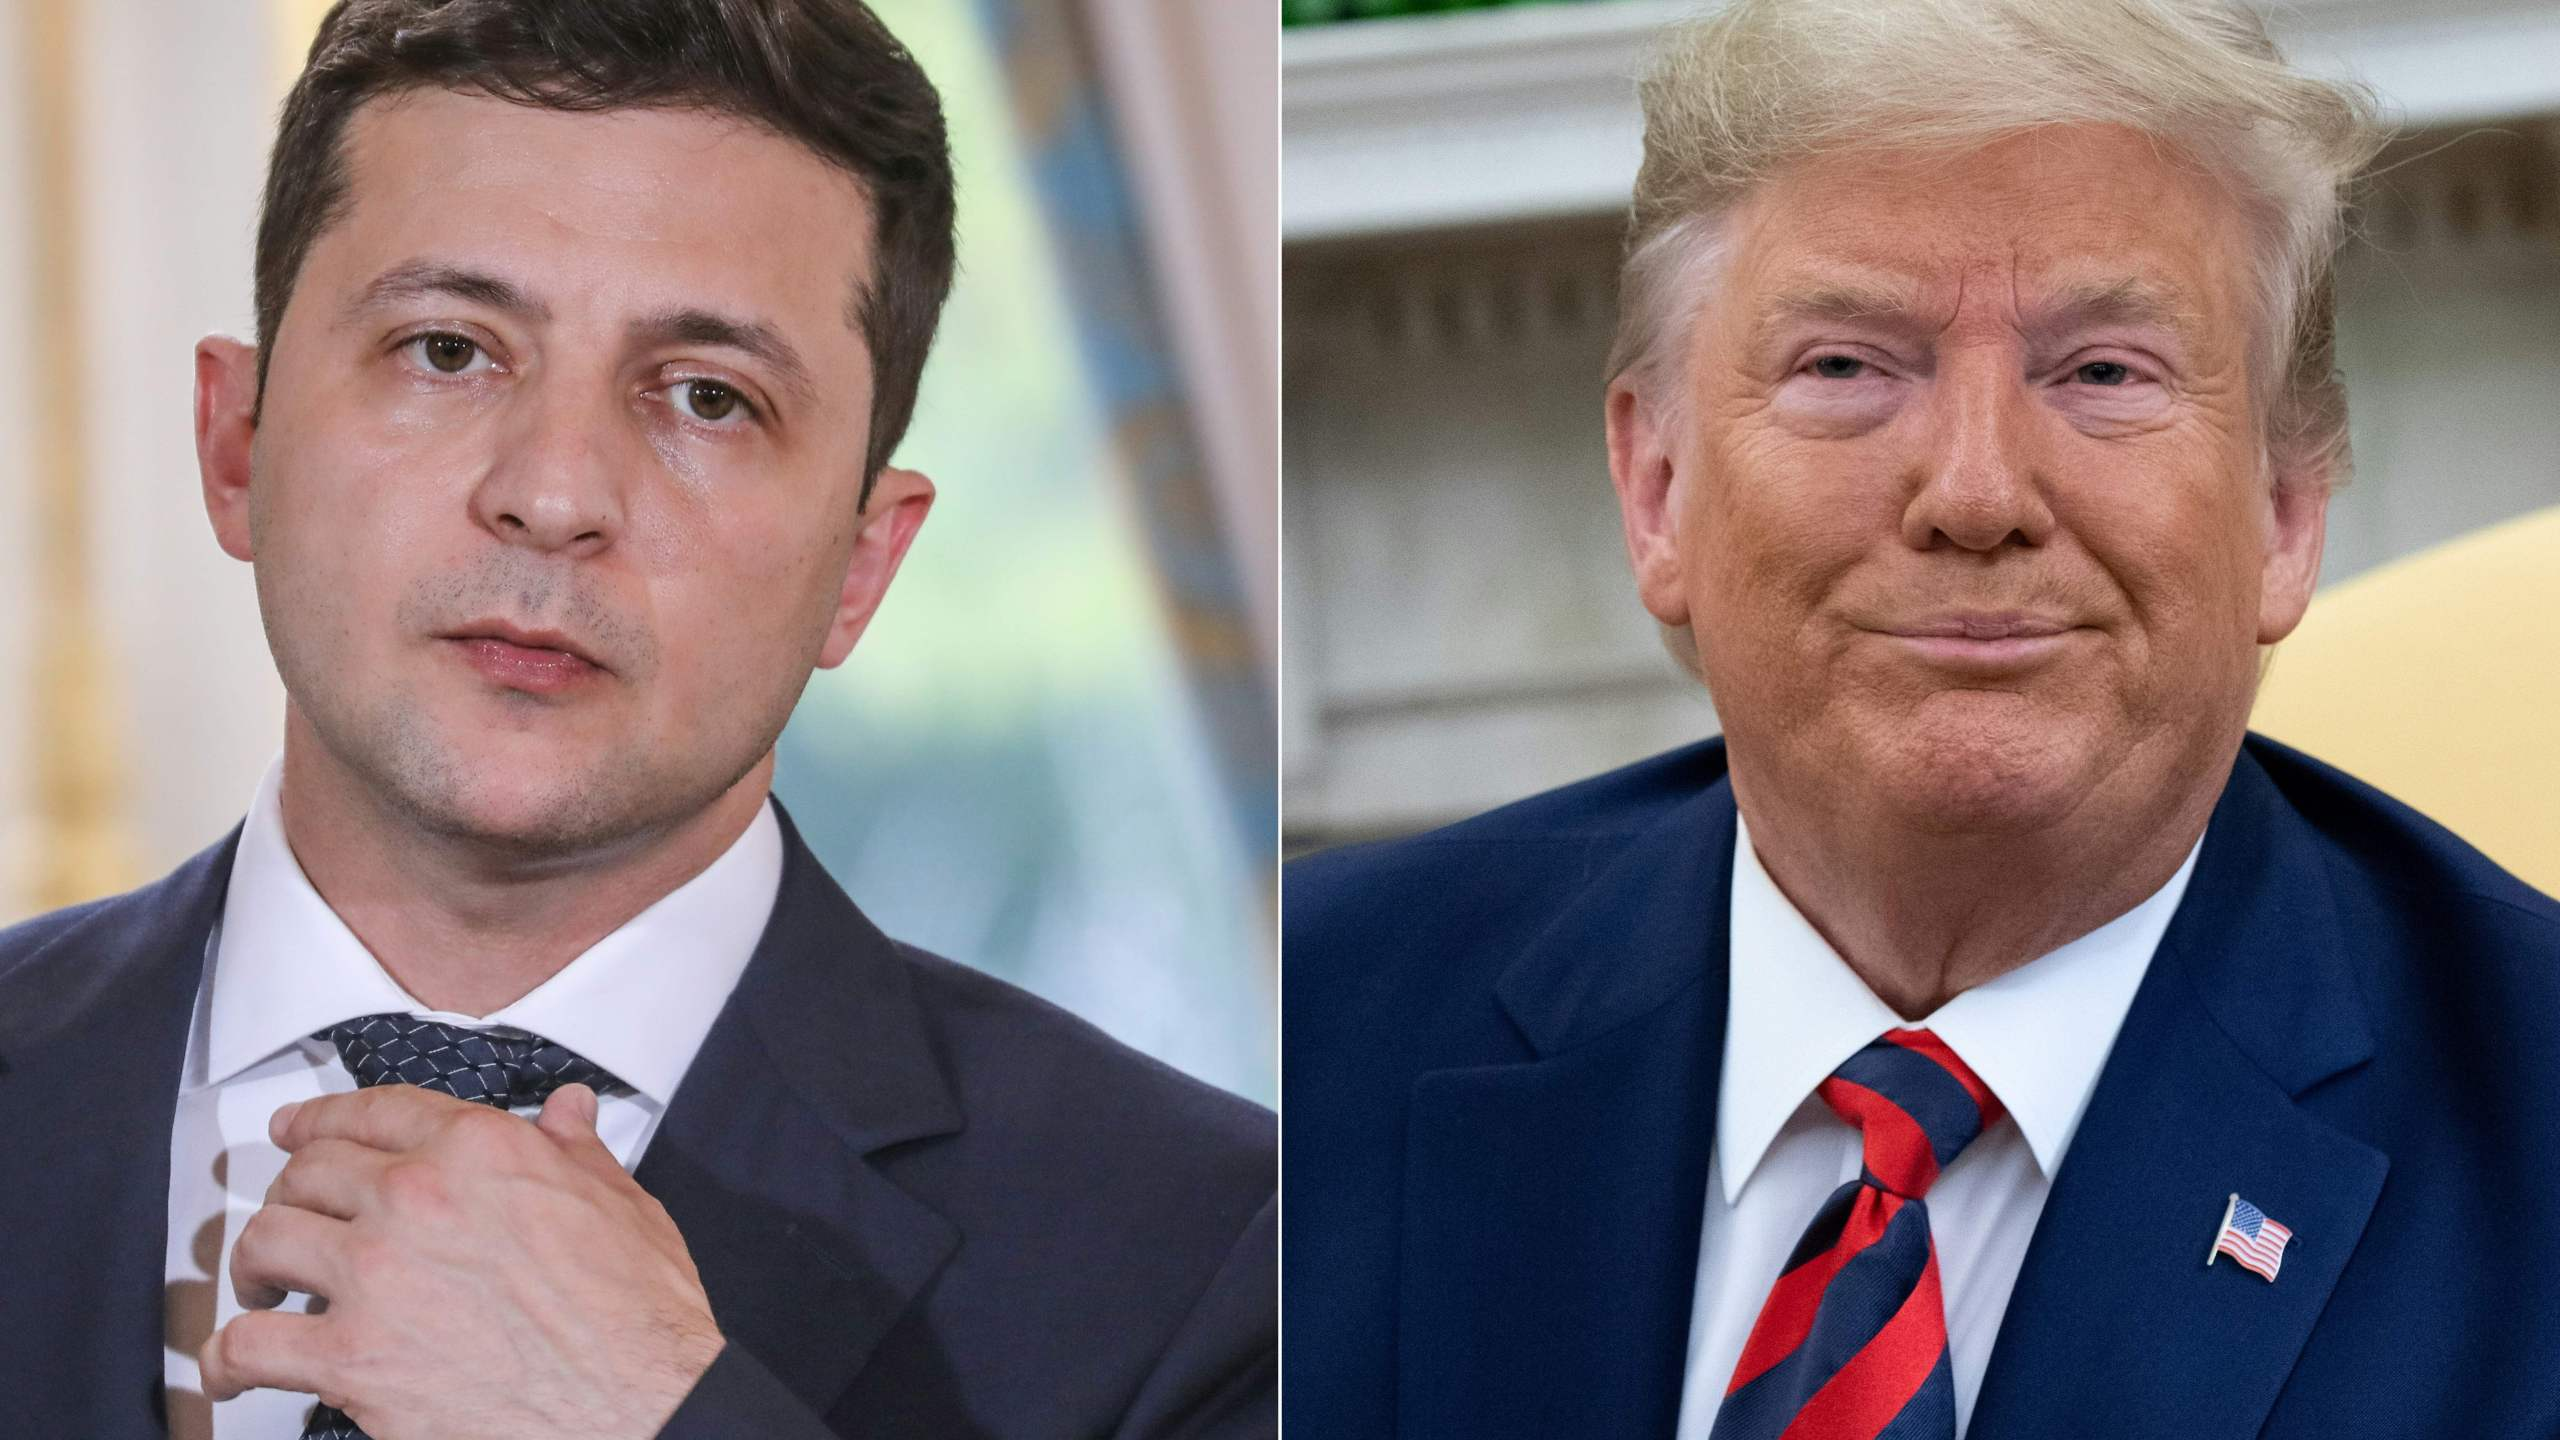 Ukraine's President Volodymyr Zelensky in June 17, 2019 in Paris and U.S. President Donald Trump during a meeting in the Oval Office at the White House in Washington, D.C. on Sept. 20, 2019. (Credi: LUDOVIC MARIN,SAUL LOEB/AFP/Getty Images)